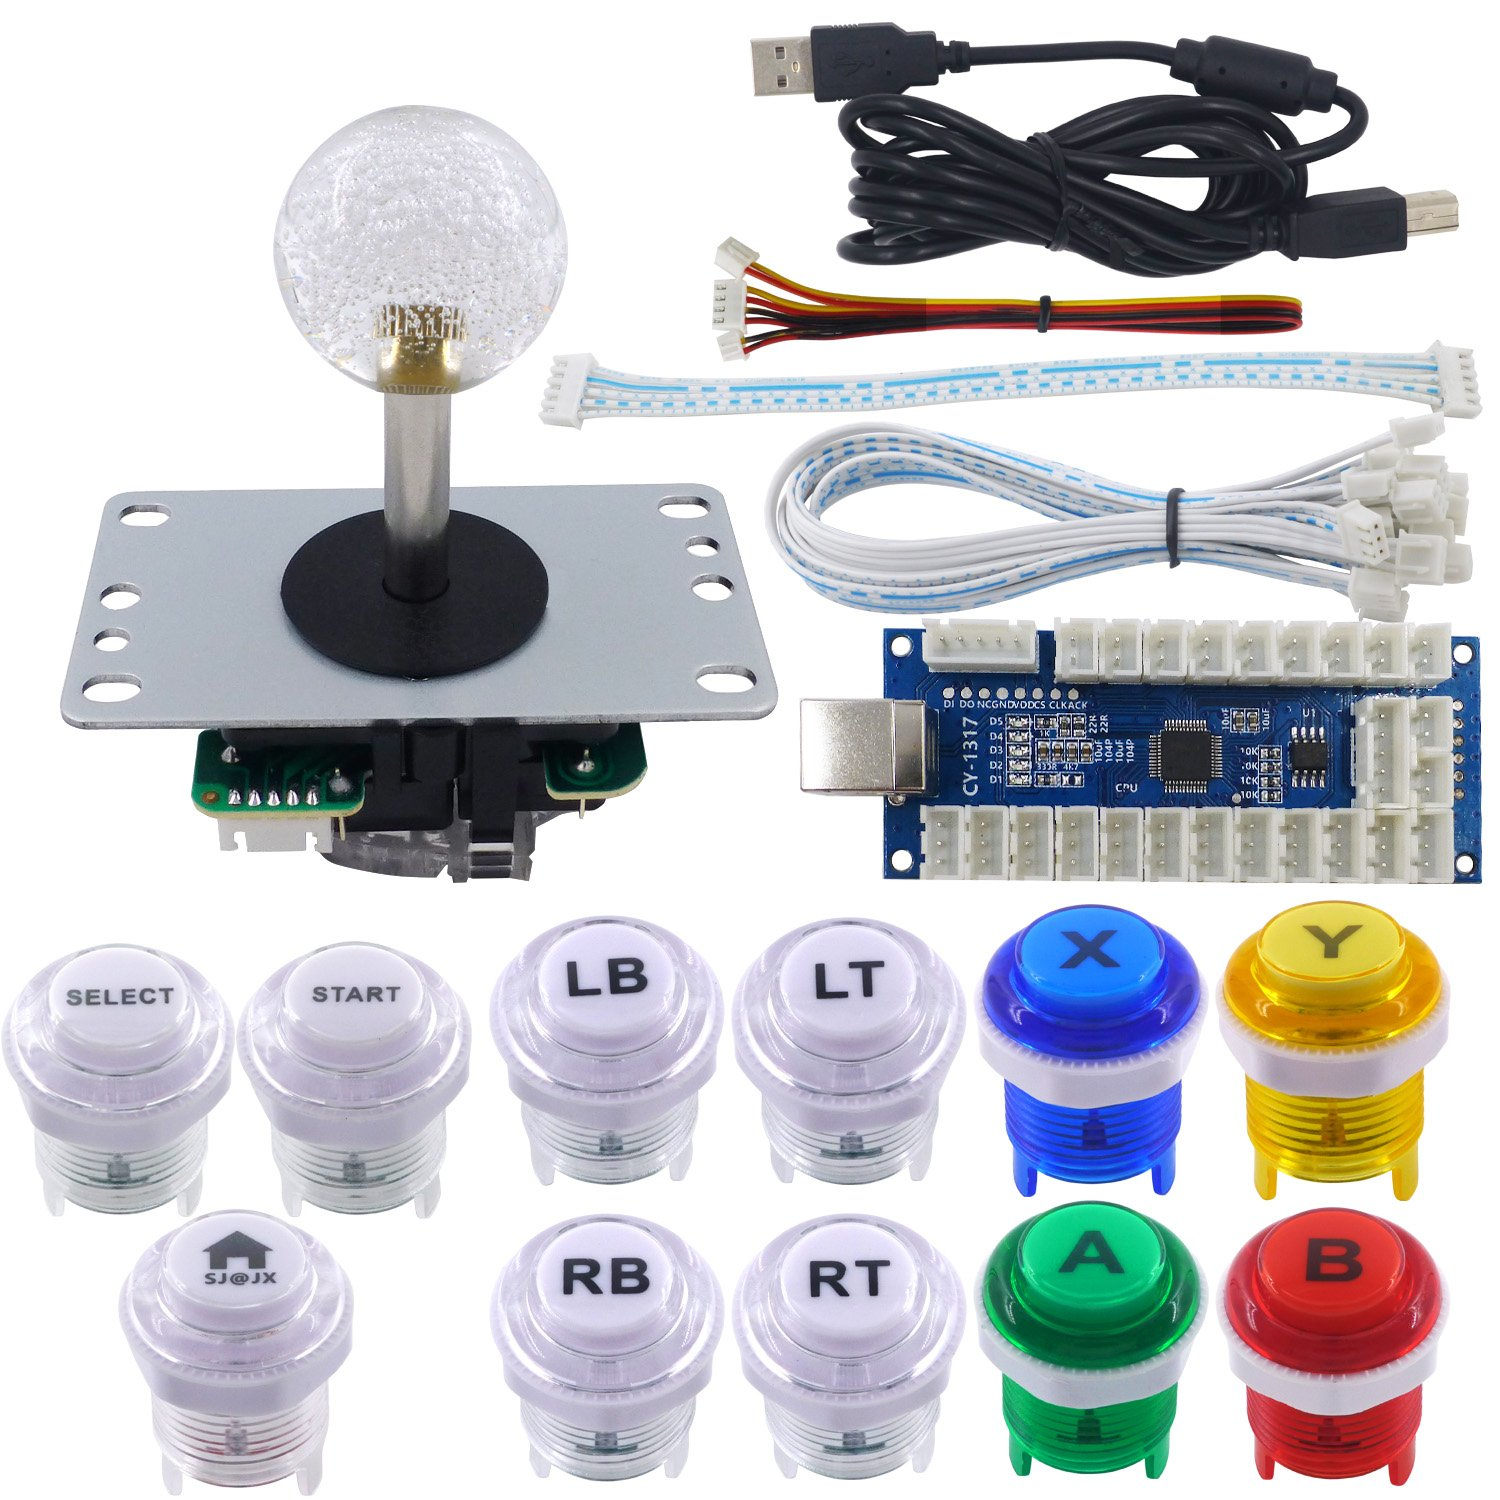 SJ@JX Arcade Game LED DIY Kit Xbox One Style Zero Delay USB Encoder Arcade Highlight Click LED Button PC PS3 Android Xbox360 Mechanical Keyboard Switch